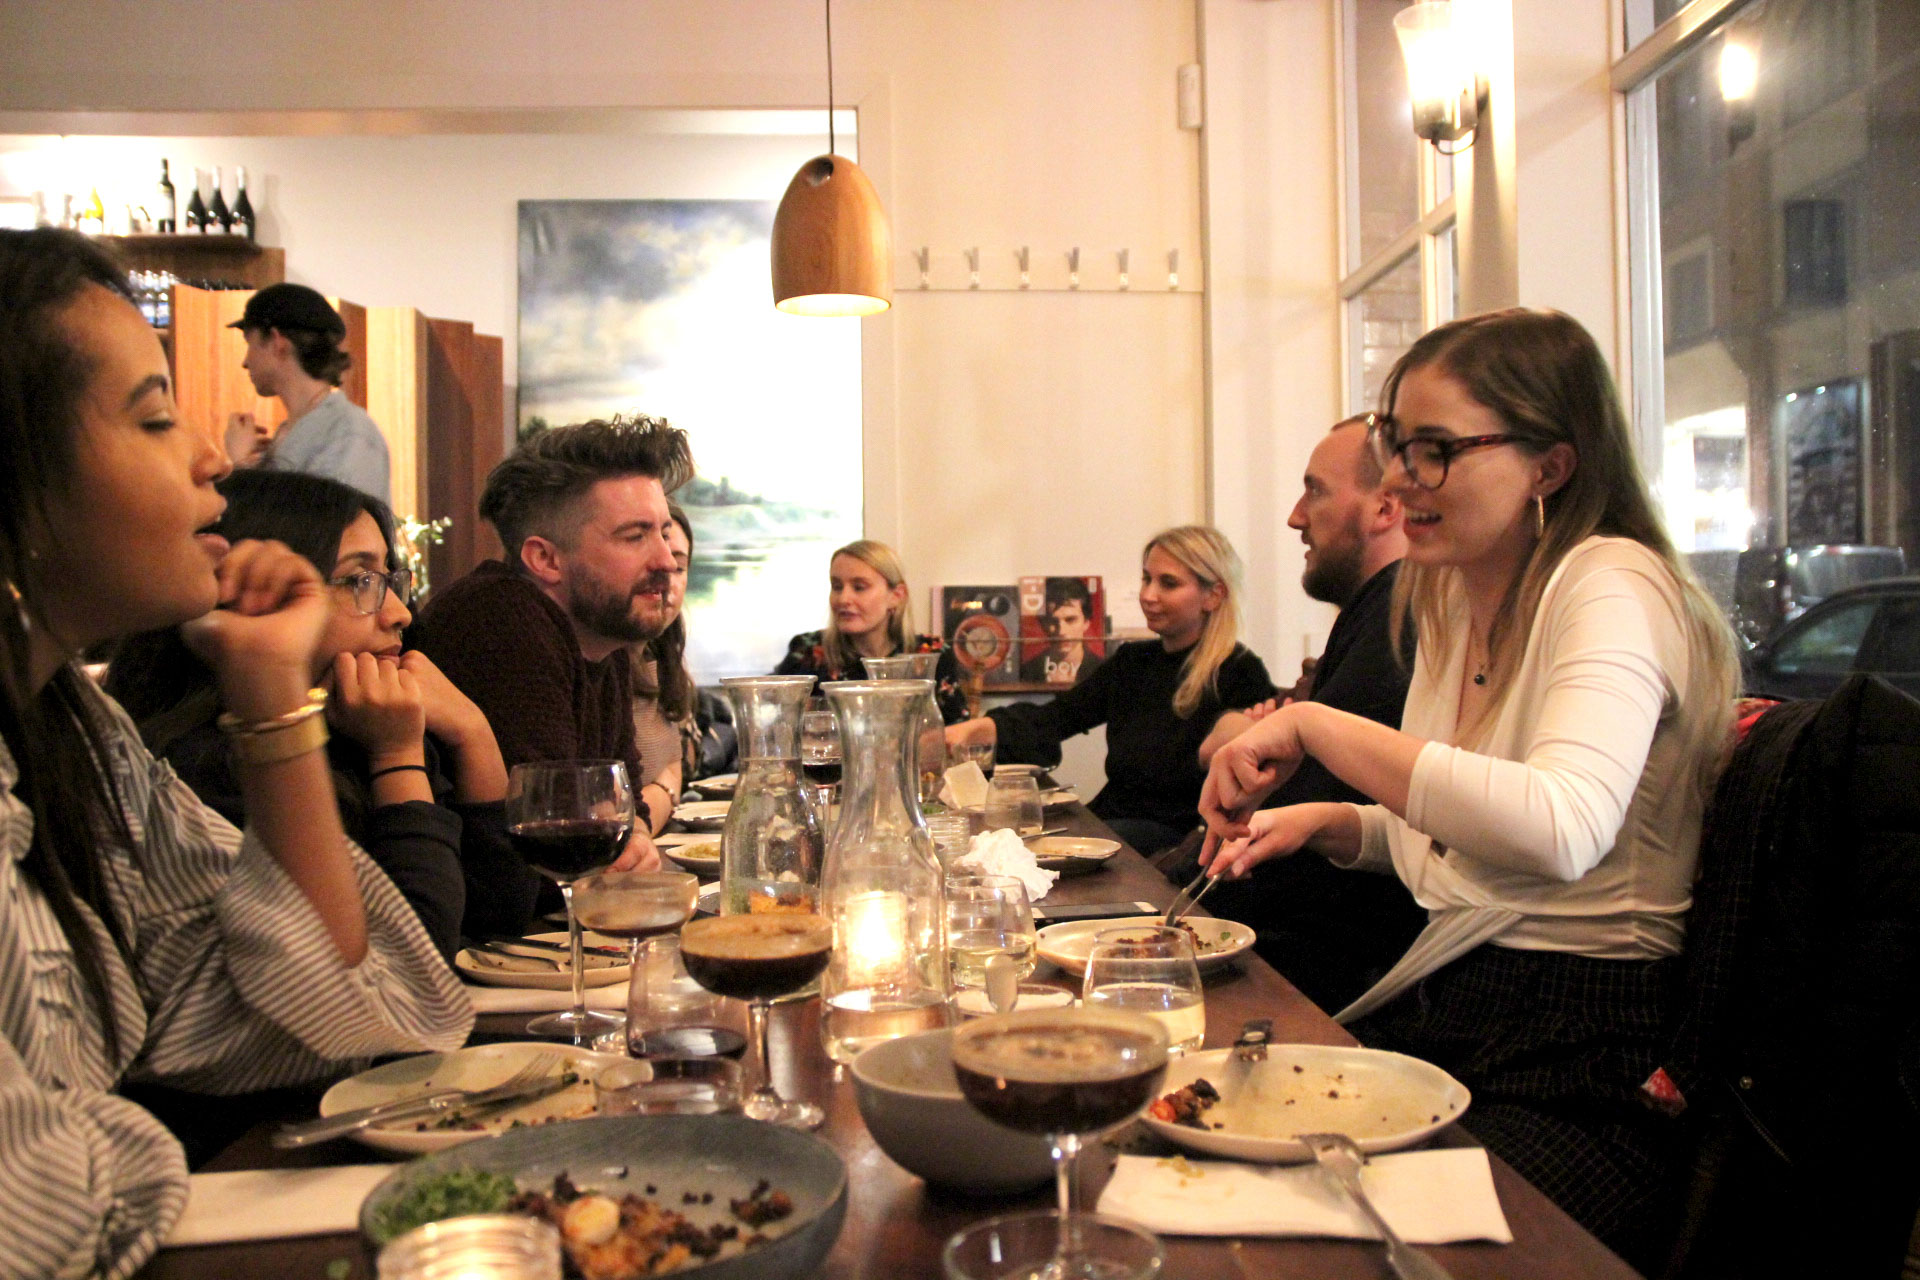 South American meets Australian cuisine at Abuelo in Covent Garden London.